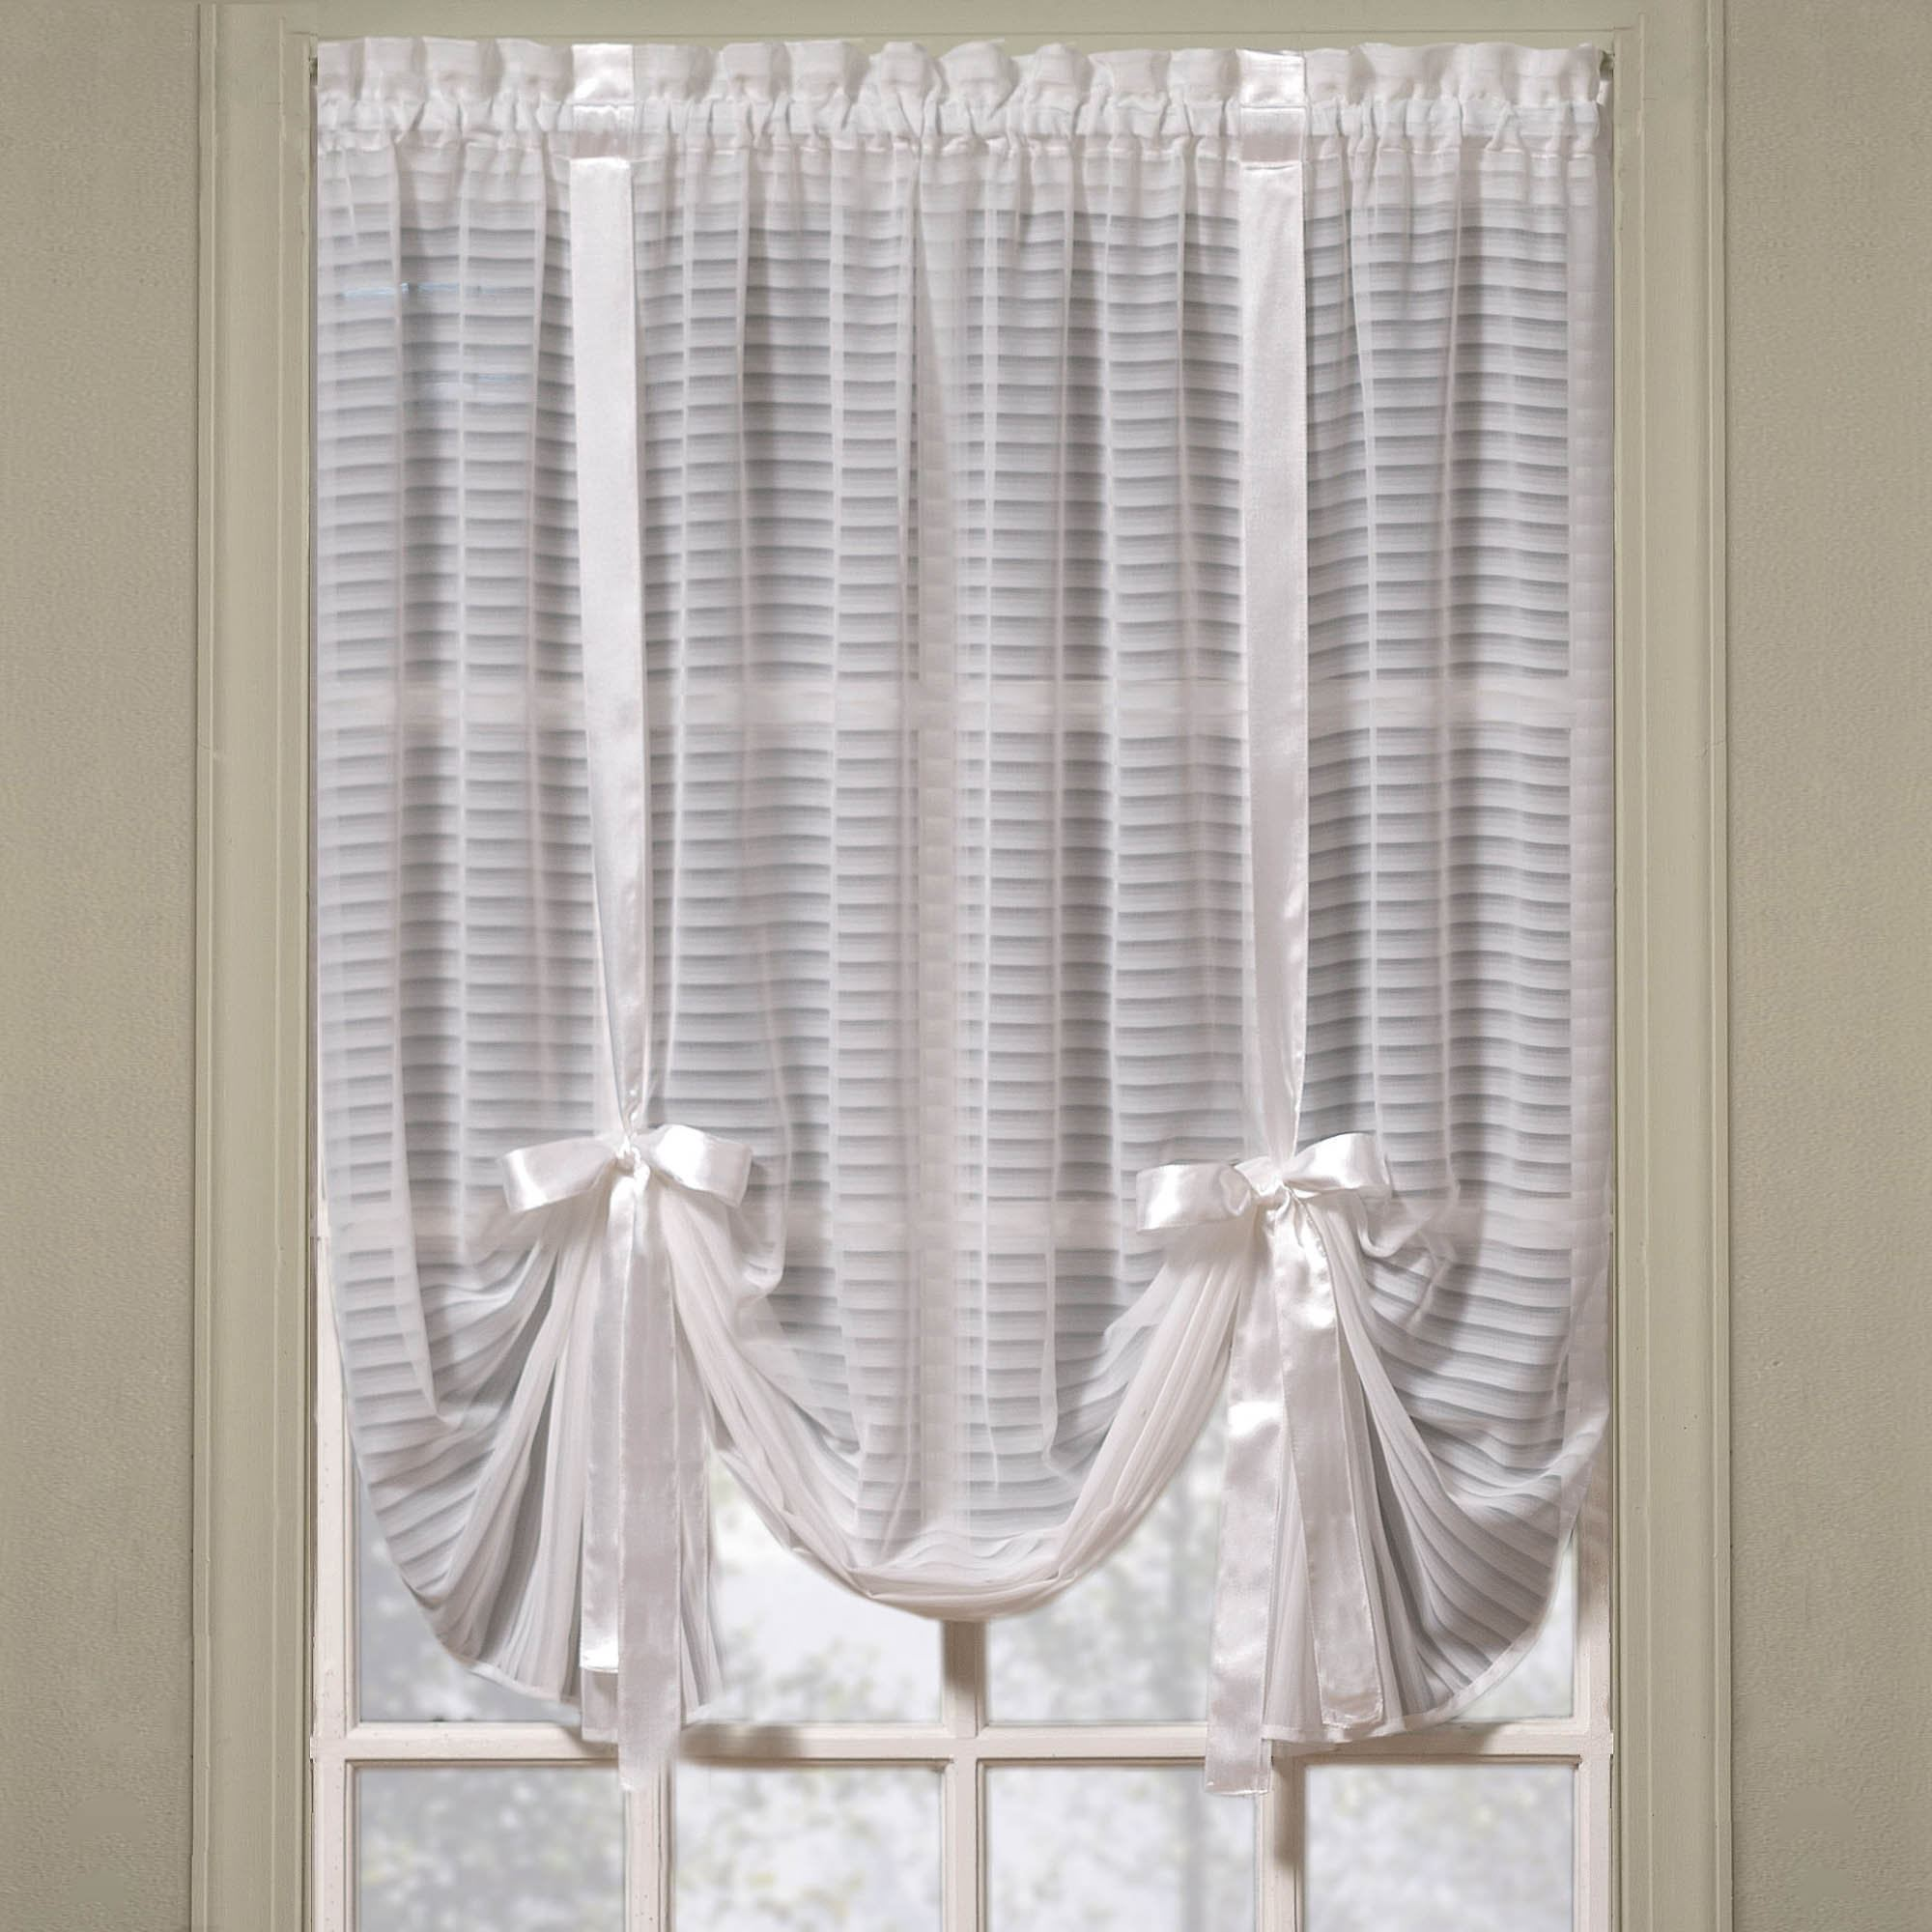 curtain weathermate all trellis site right eystudios up copyright panel tie trtieupvawet researved valance shop the curtains design thermalogic by